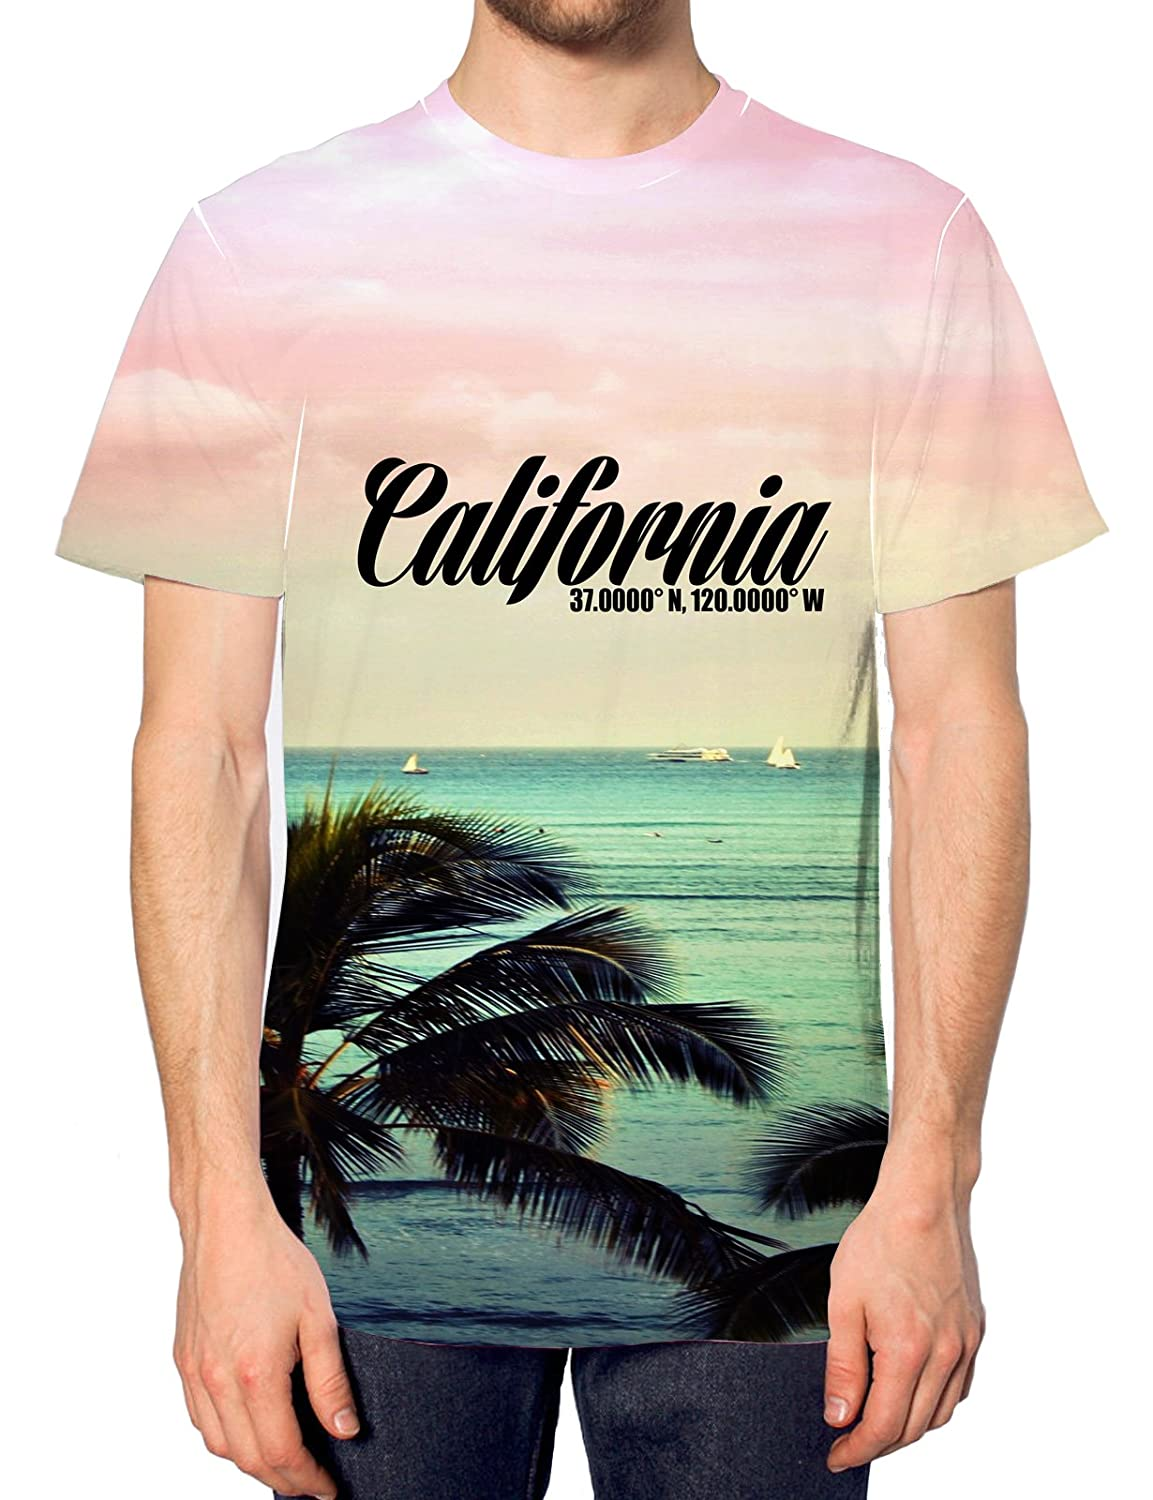 California All Over Printed T Shirt Summer Beach Holiday Festival Mens Womens